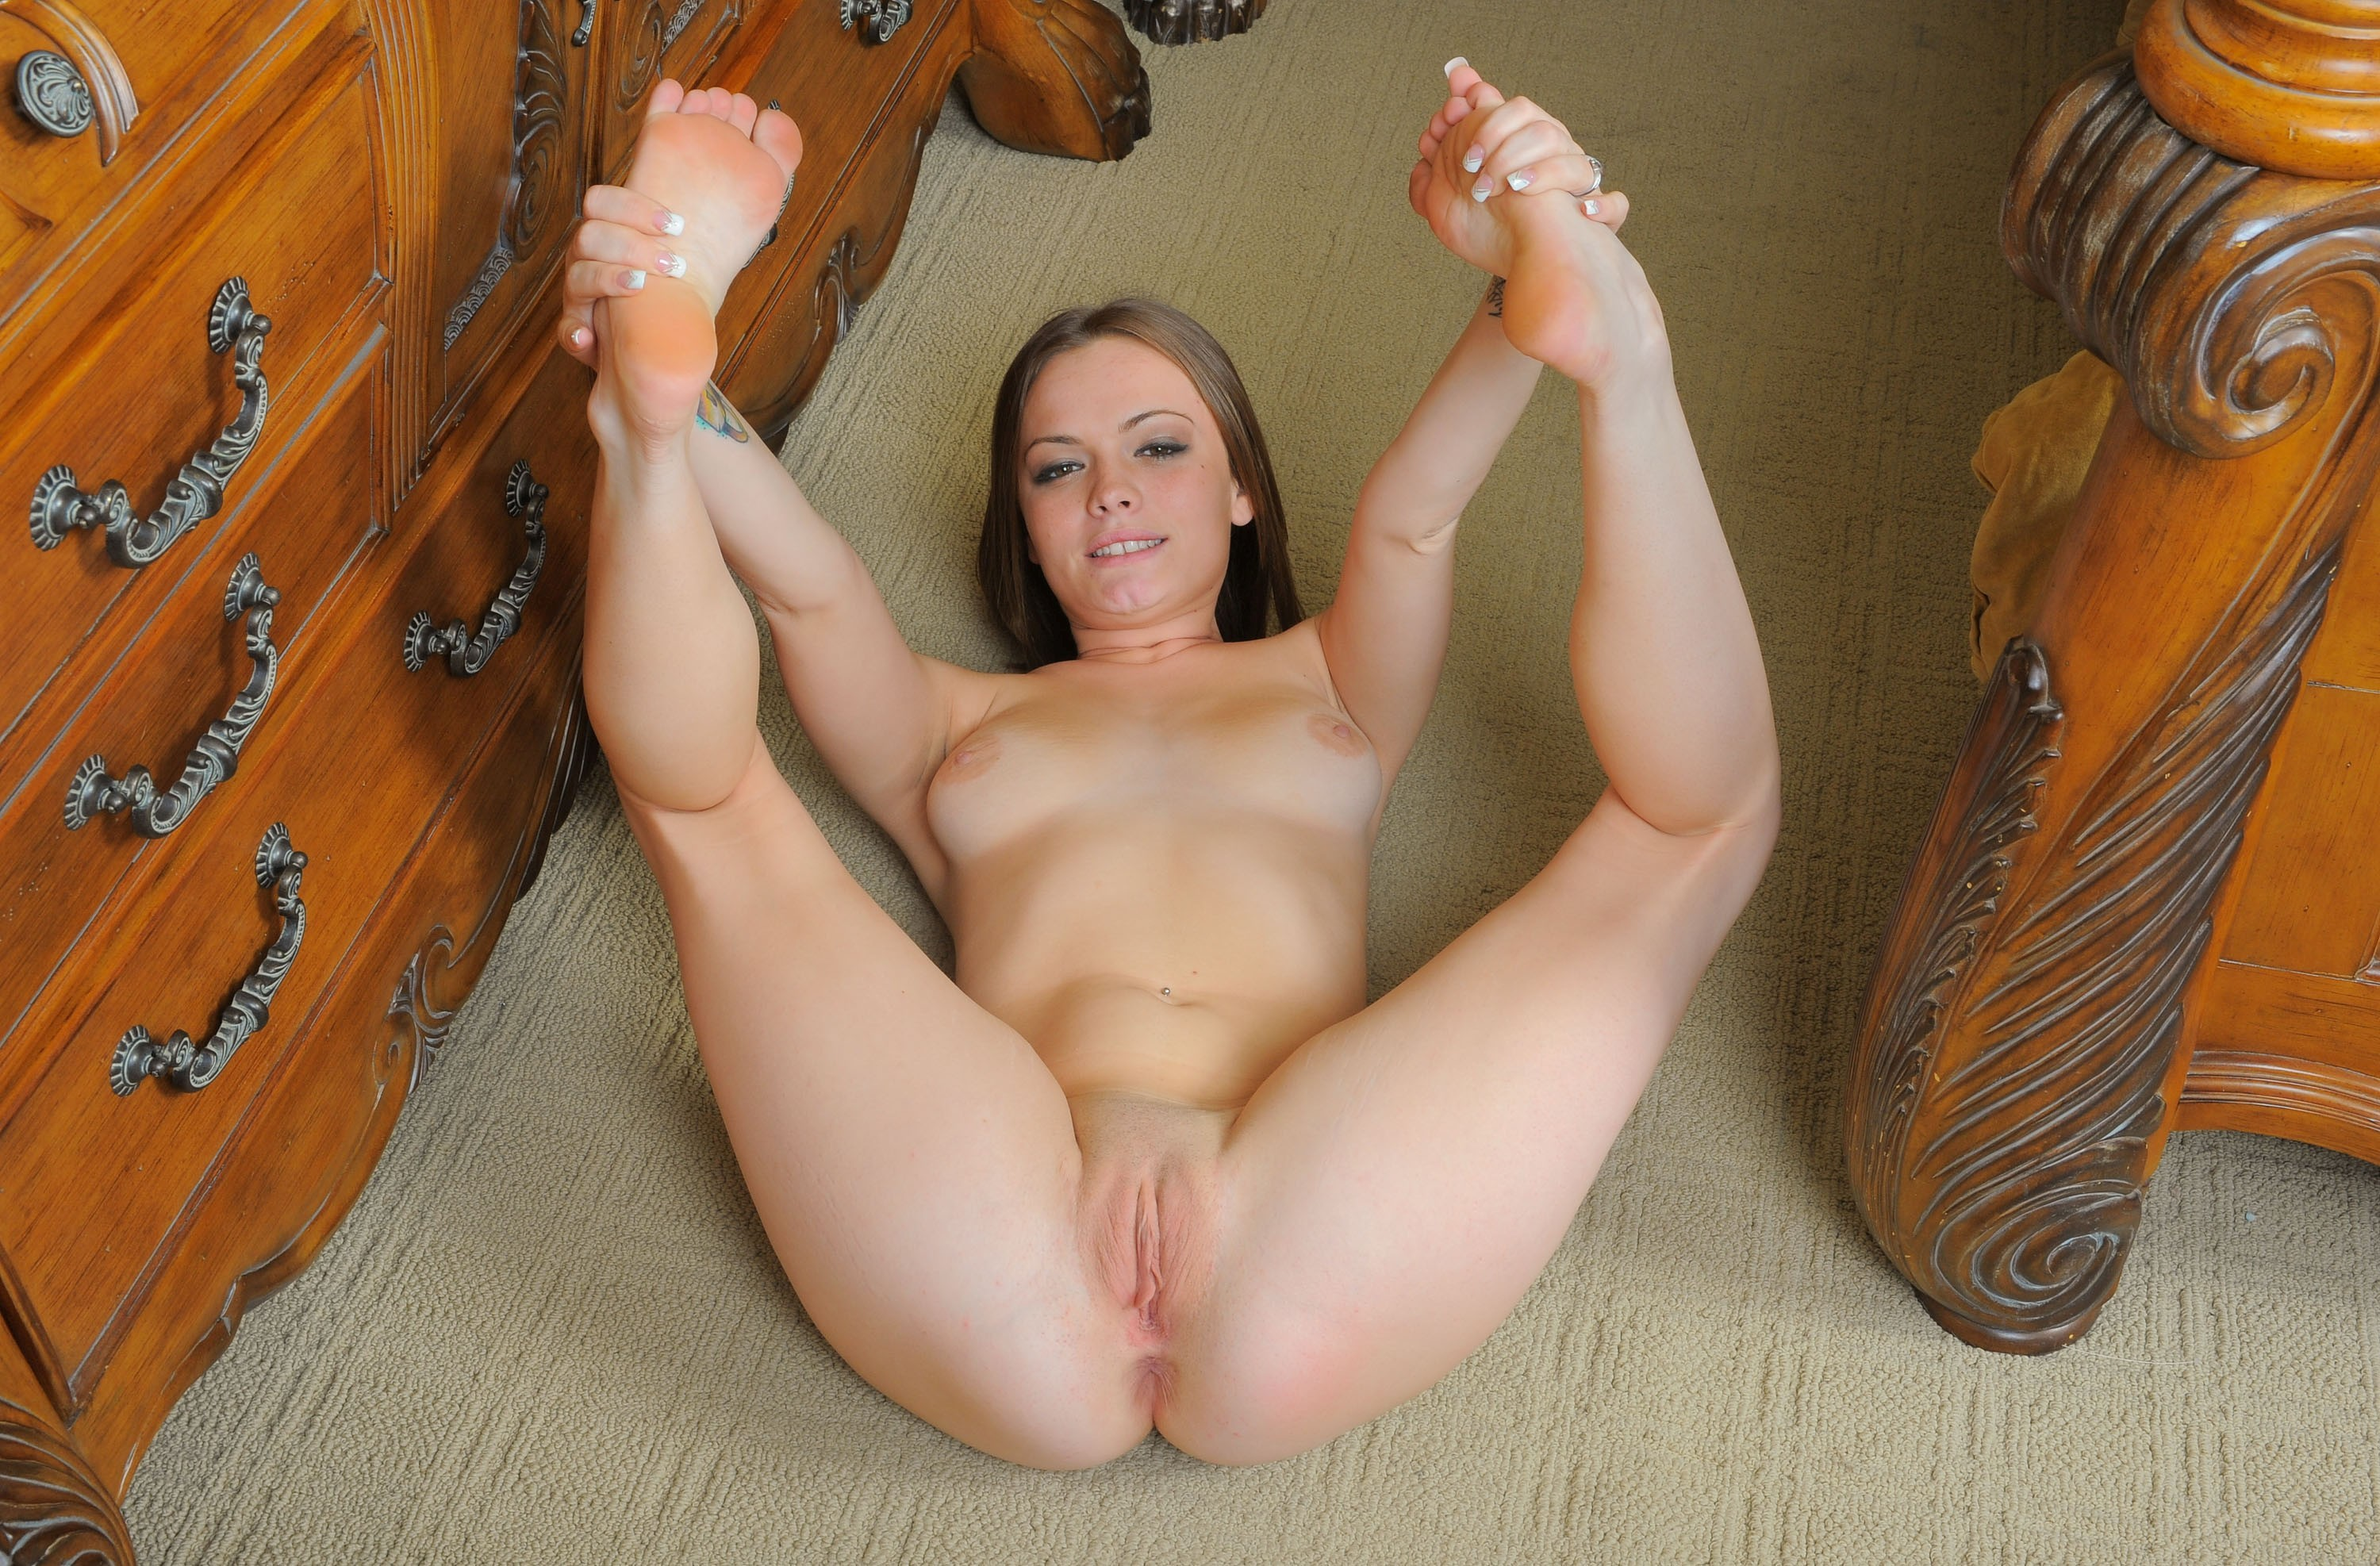 wide Spread those open legs